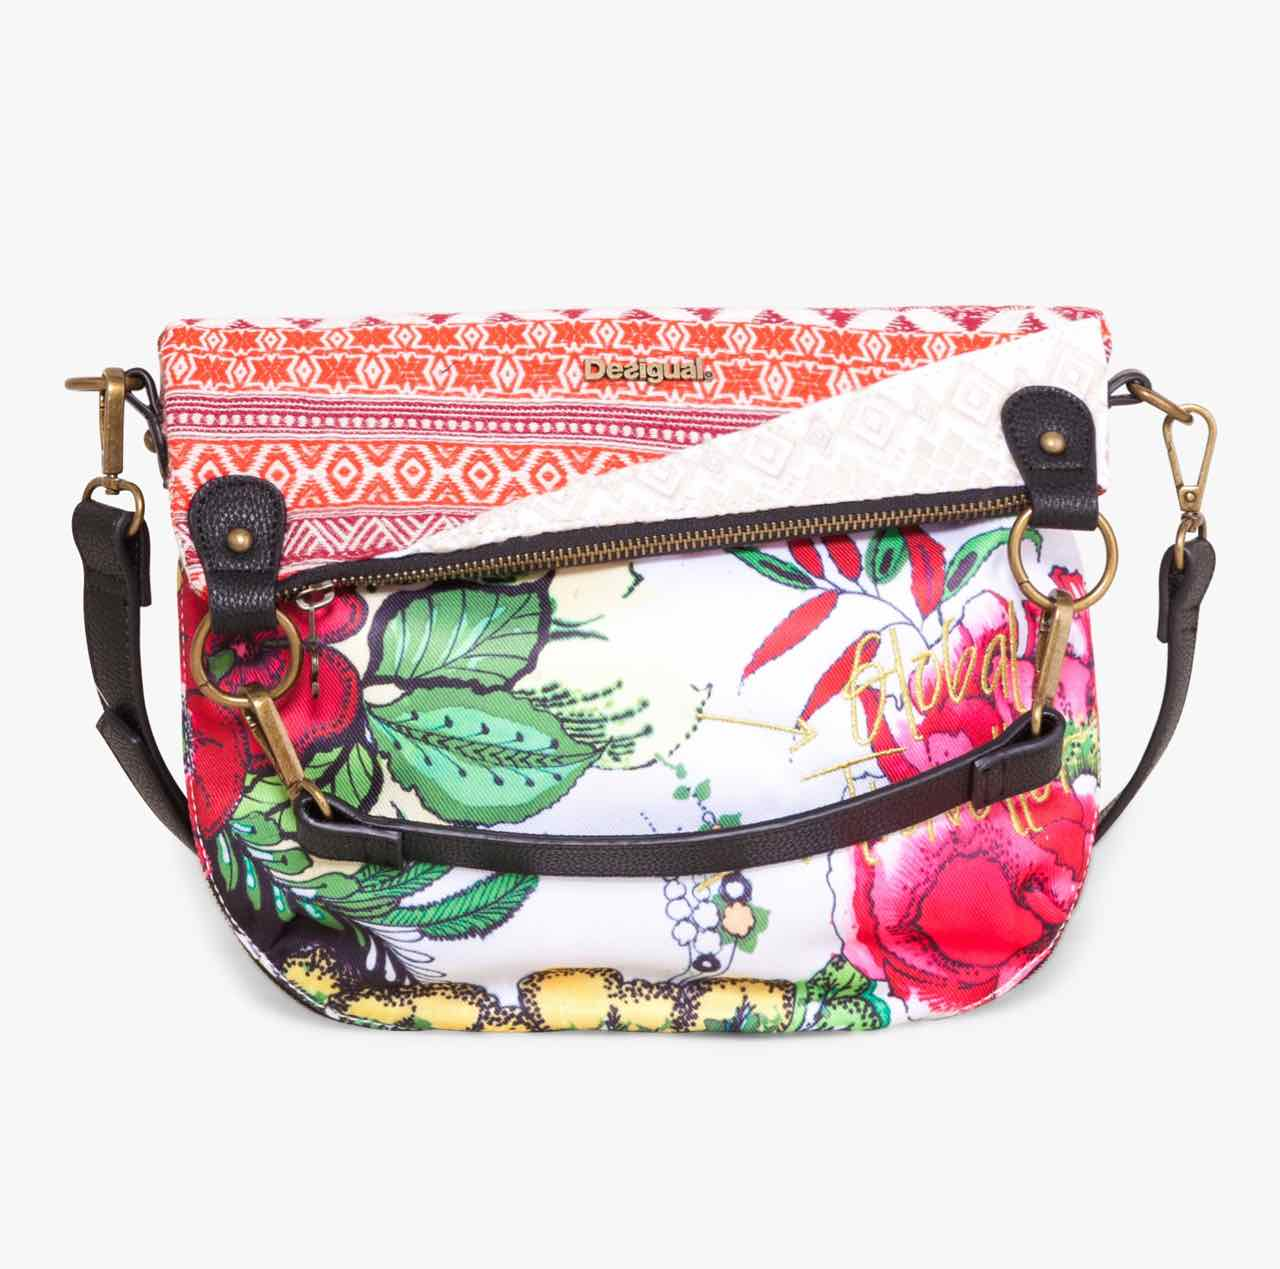 74X9EC8_3098 Desigual Bag Folded Madeira Buy Online